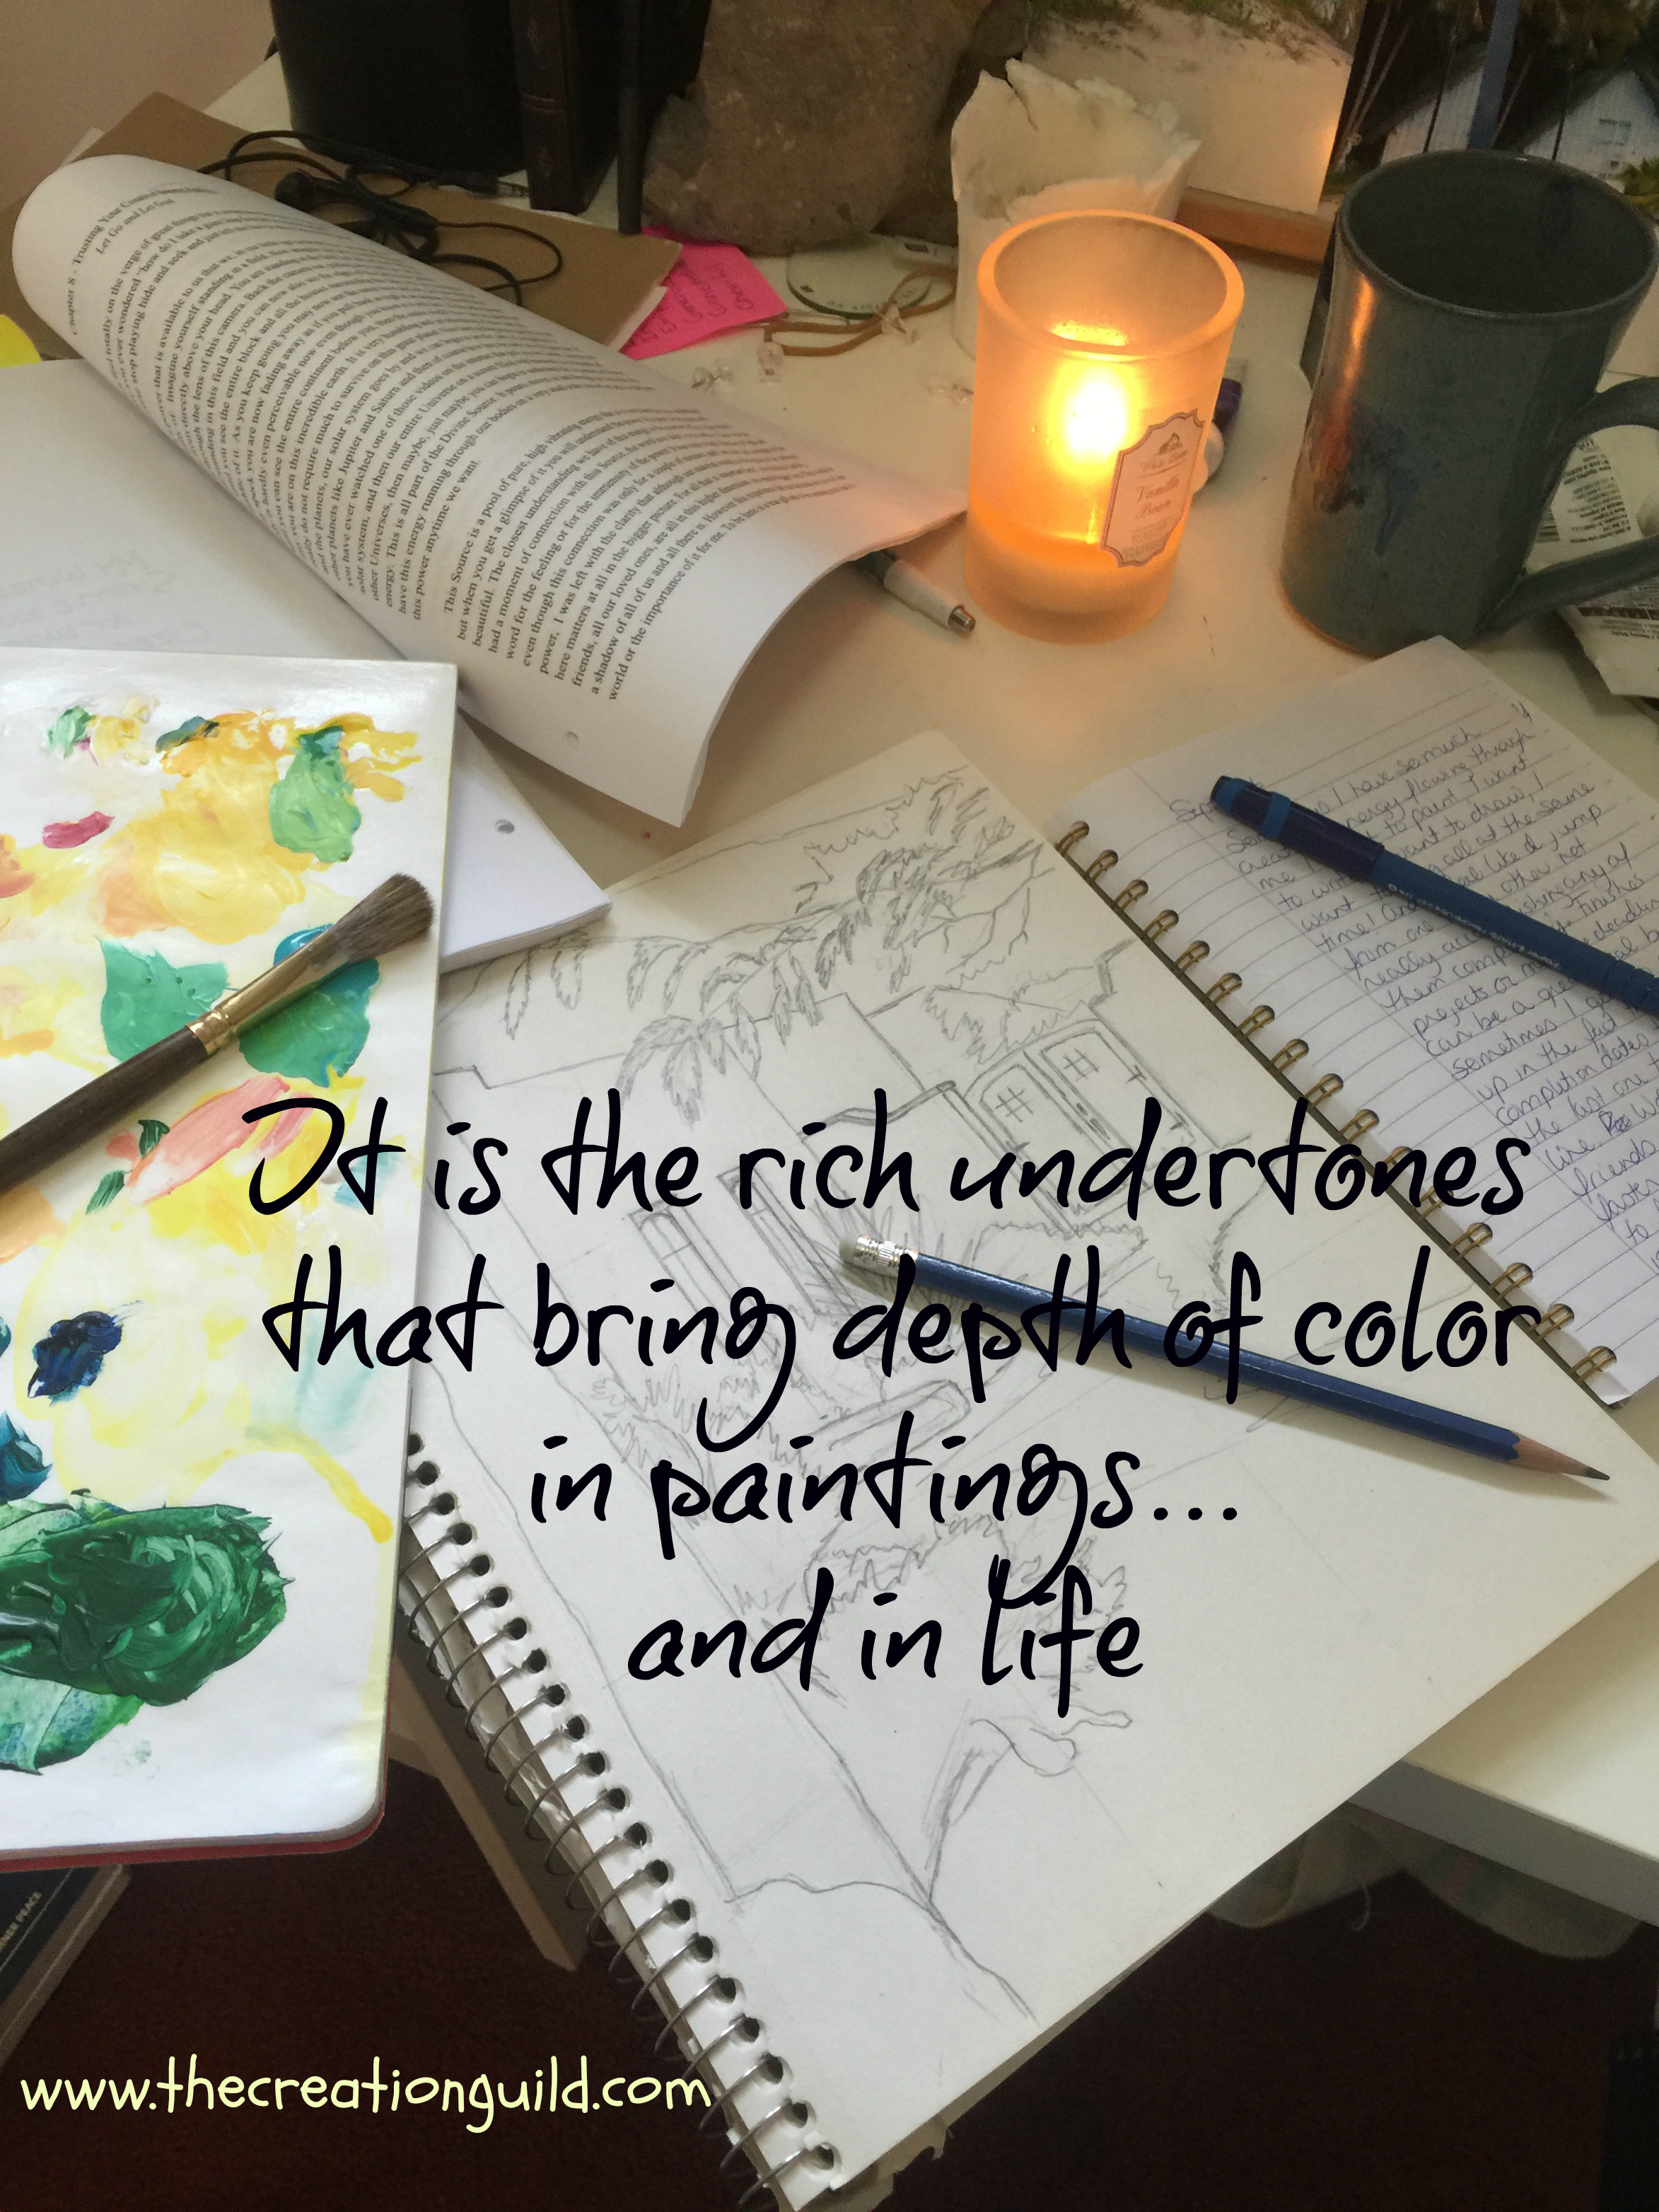 Rich undertones colors & life blog by Janice Gallant https://thecreationguild.com/